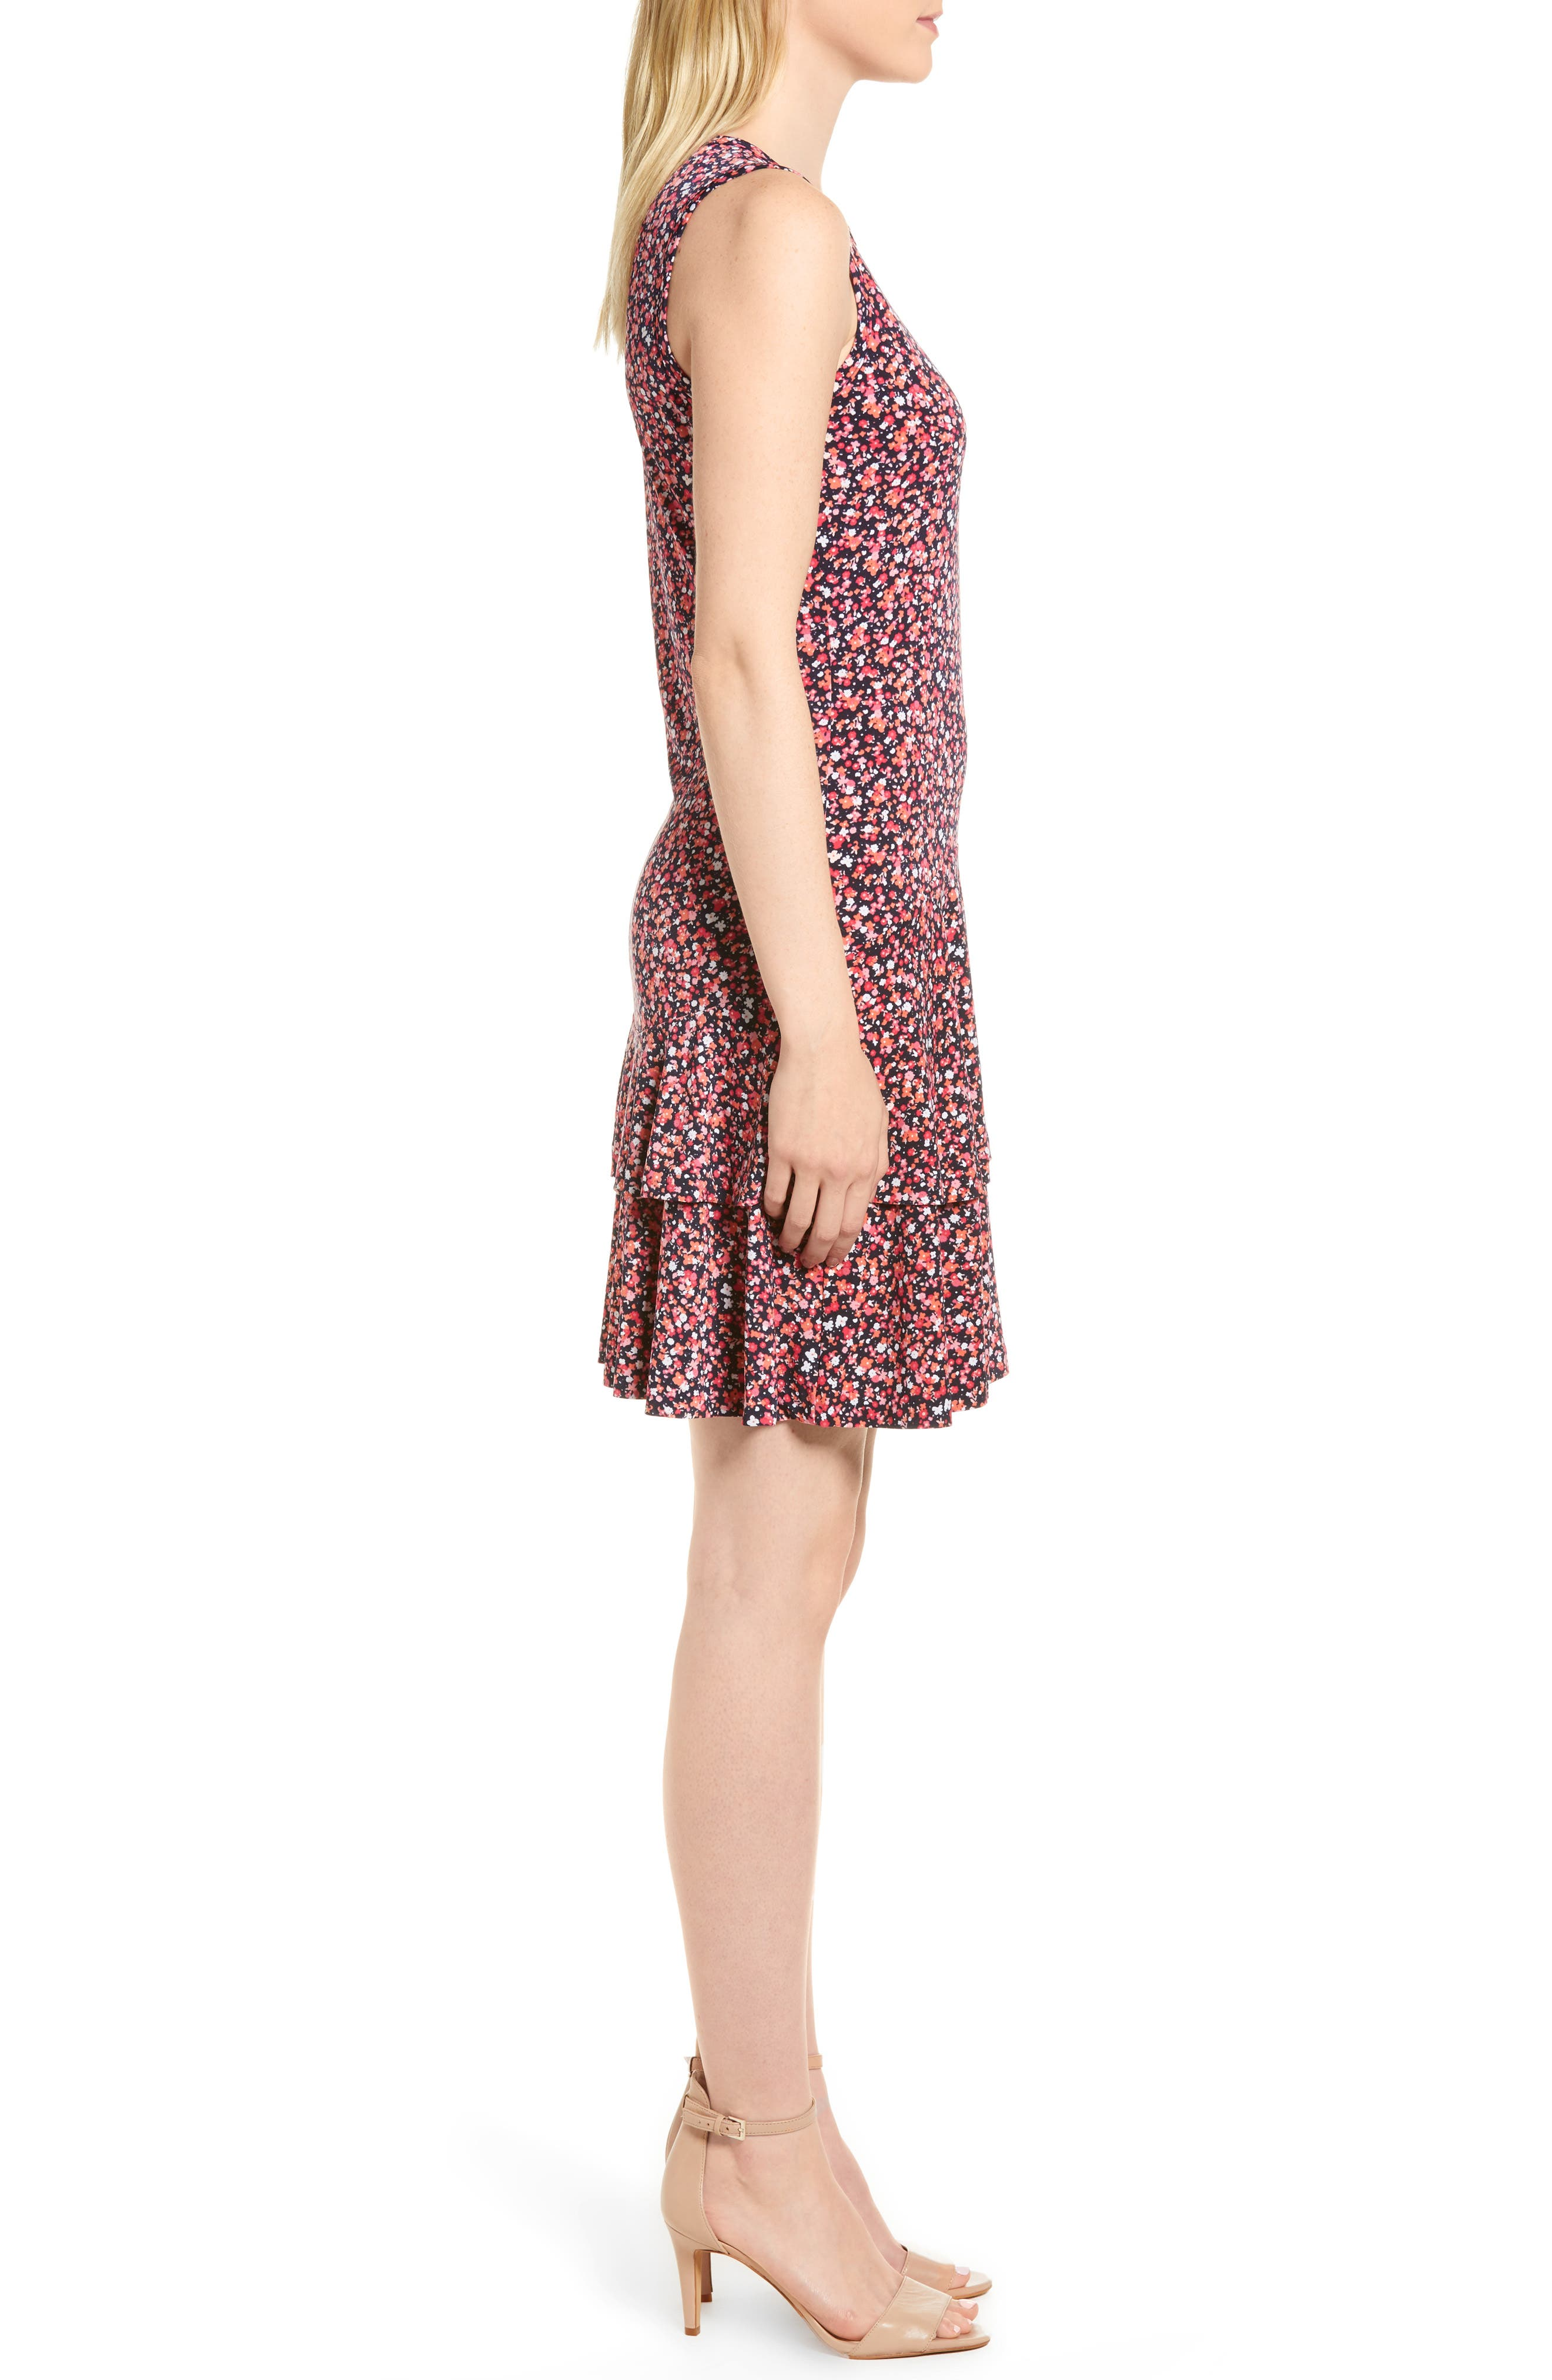 Wildflower Flounce Sleeveless Dress,                             Alternate thumbnail 3, color,                             True Navy/ Bright Blush